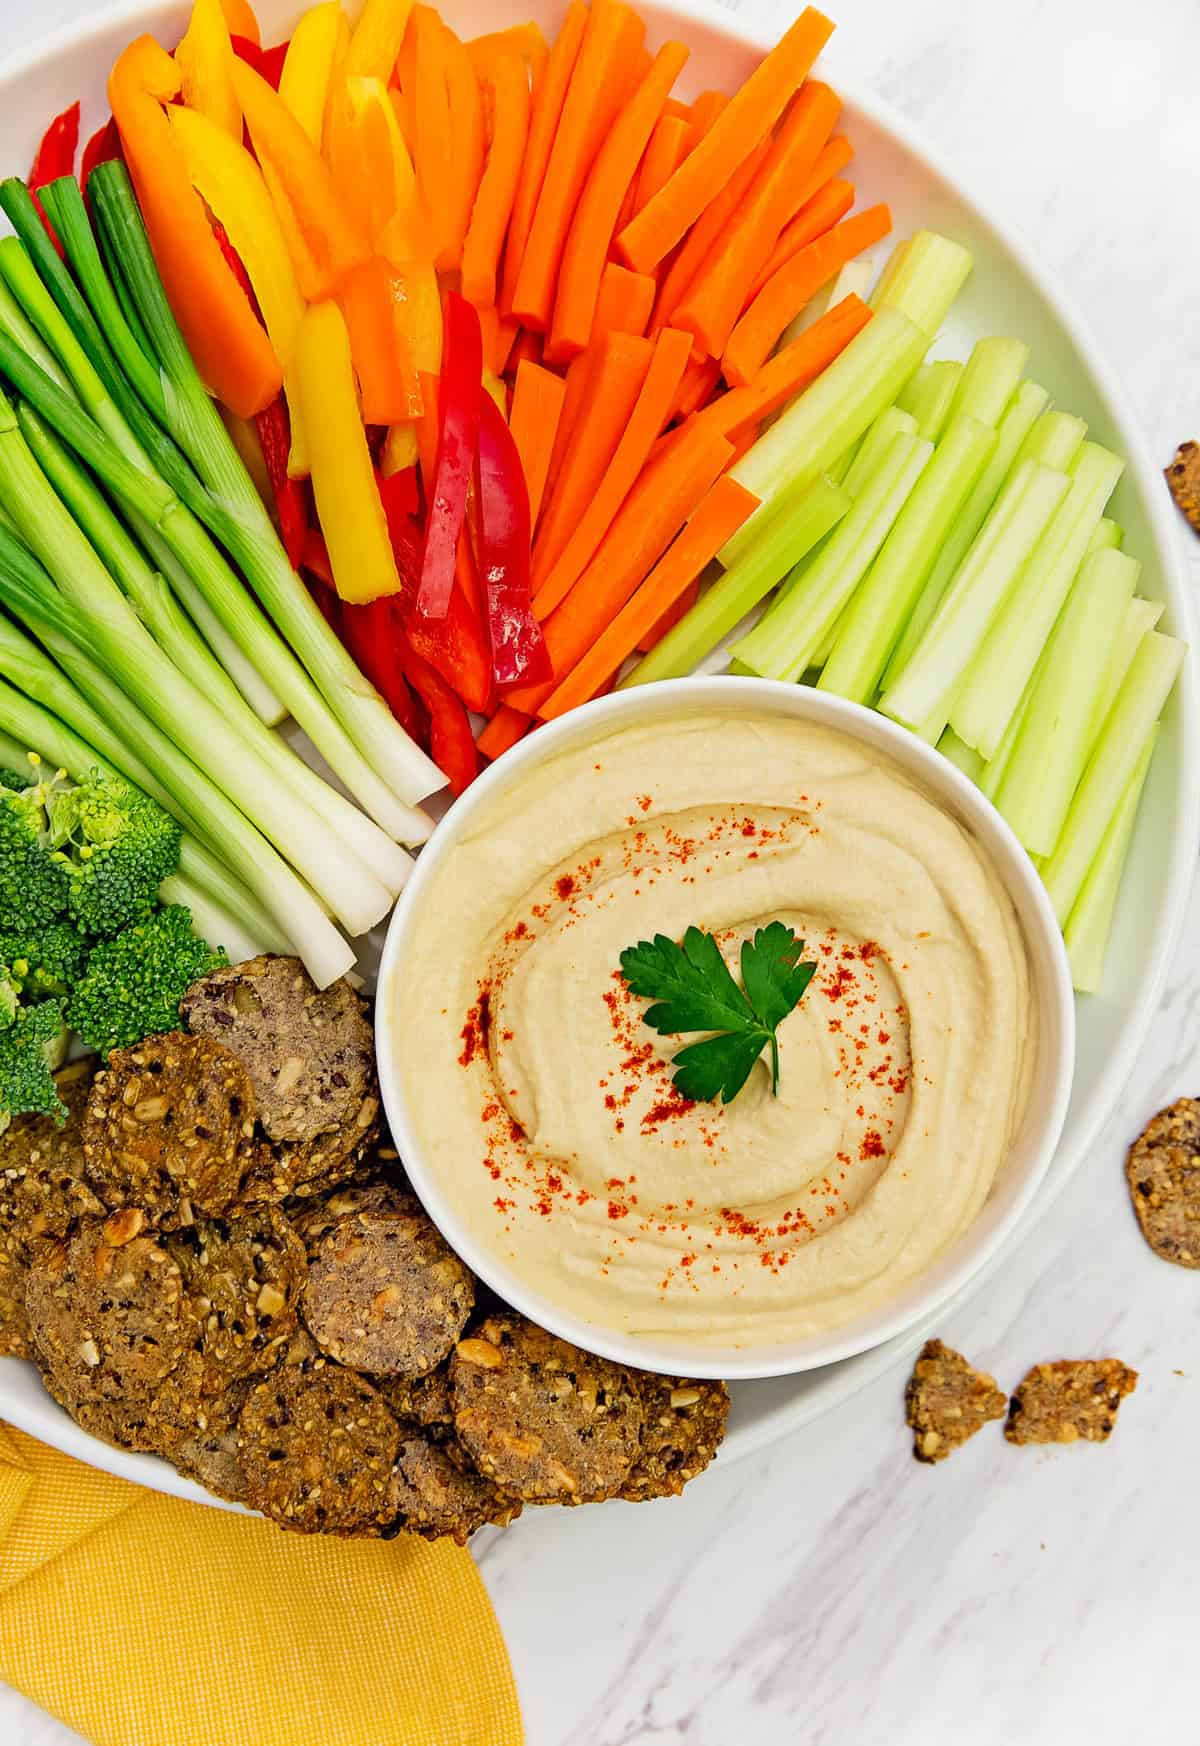 The Best Hummus Creamy Smooth Pea Dip Garbanzo